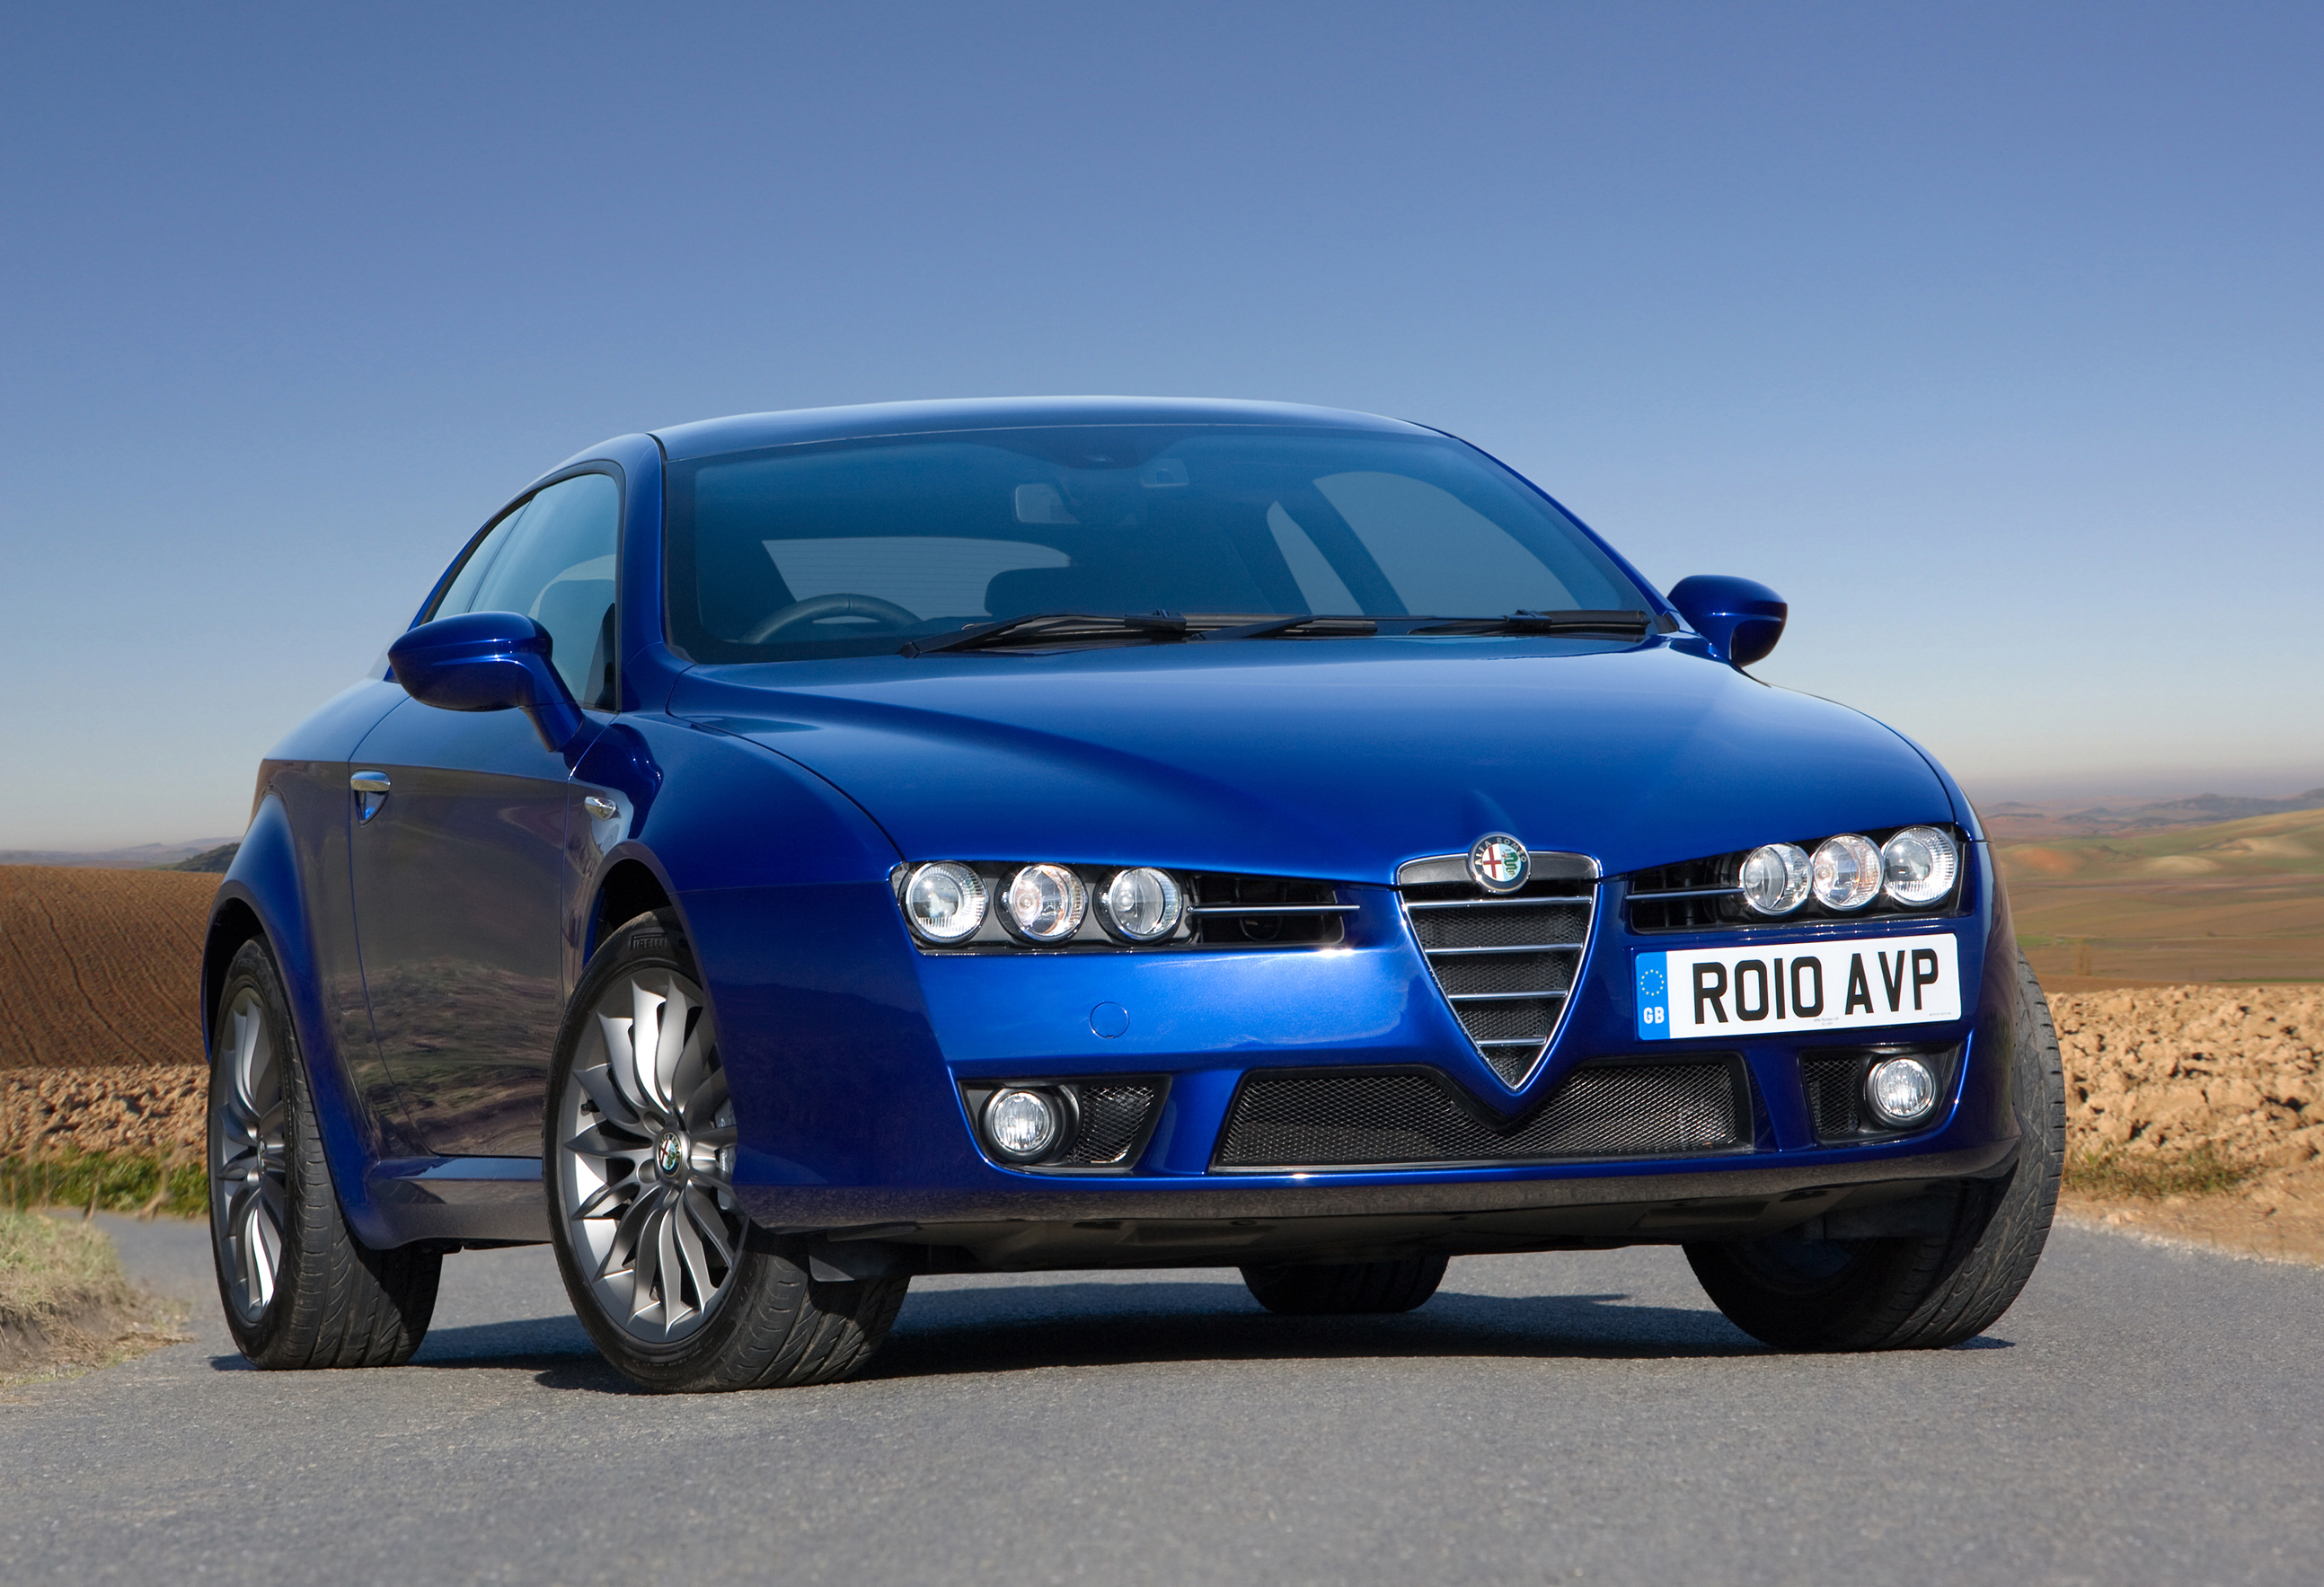 alfa romeo uk offers exclusive trim level for brera and spider. Black Bedroom Furniture Sets. Home Design Ideas